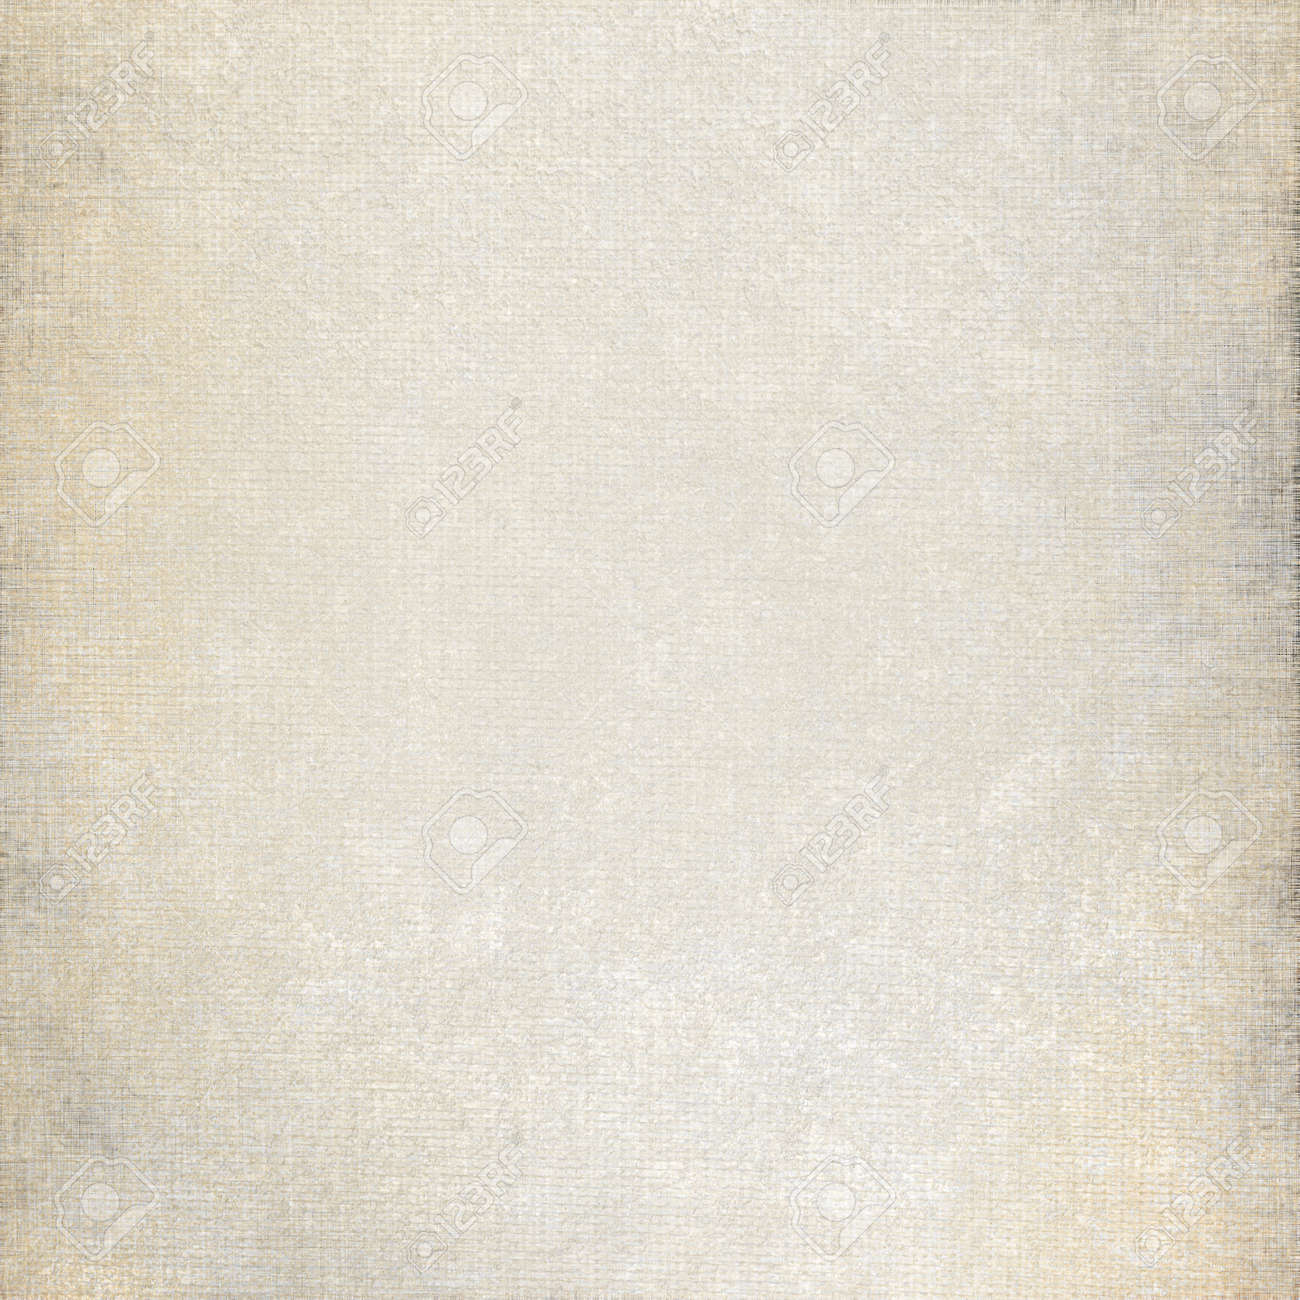 old canvas texture grunge background Stock Photo - 17876600